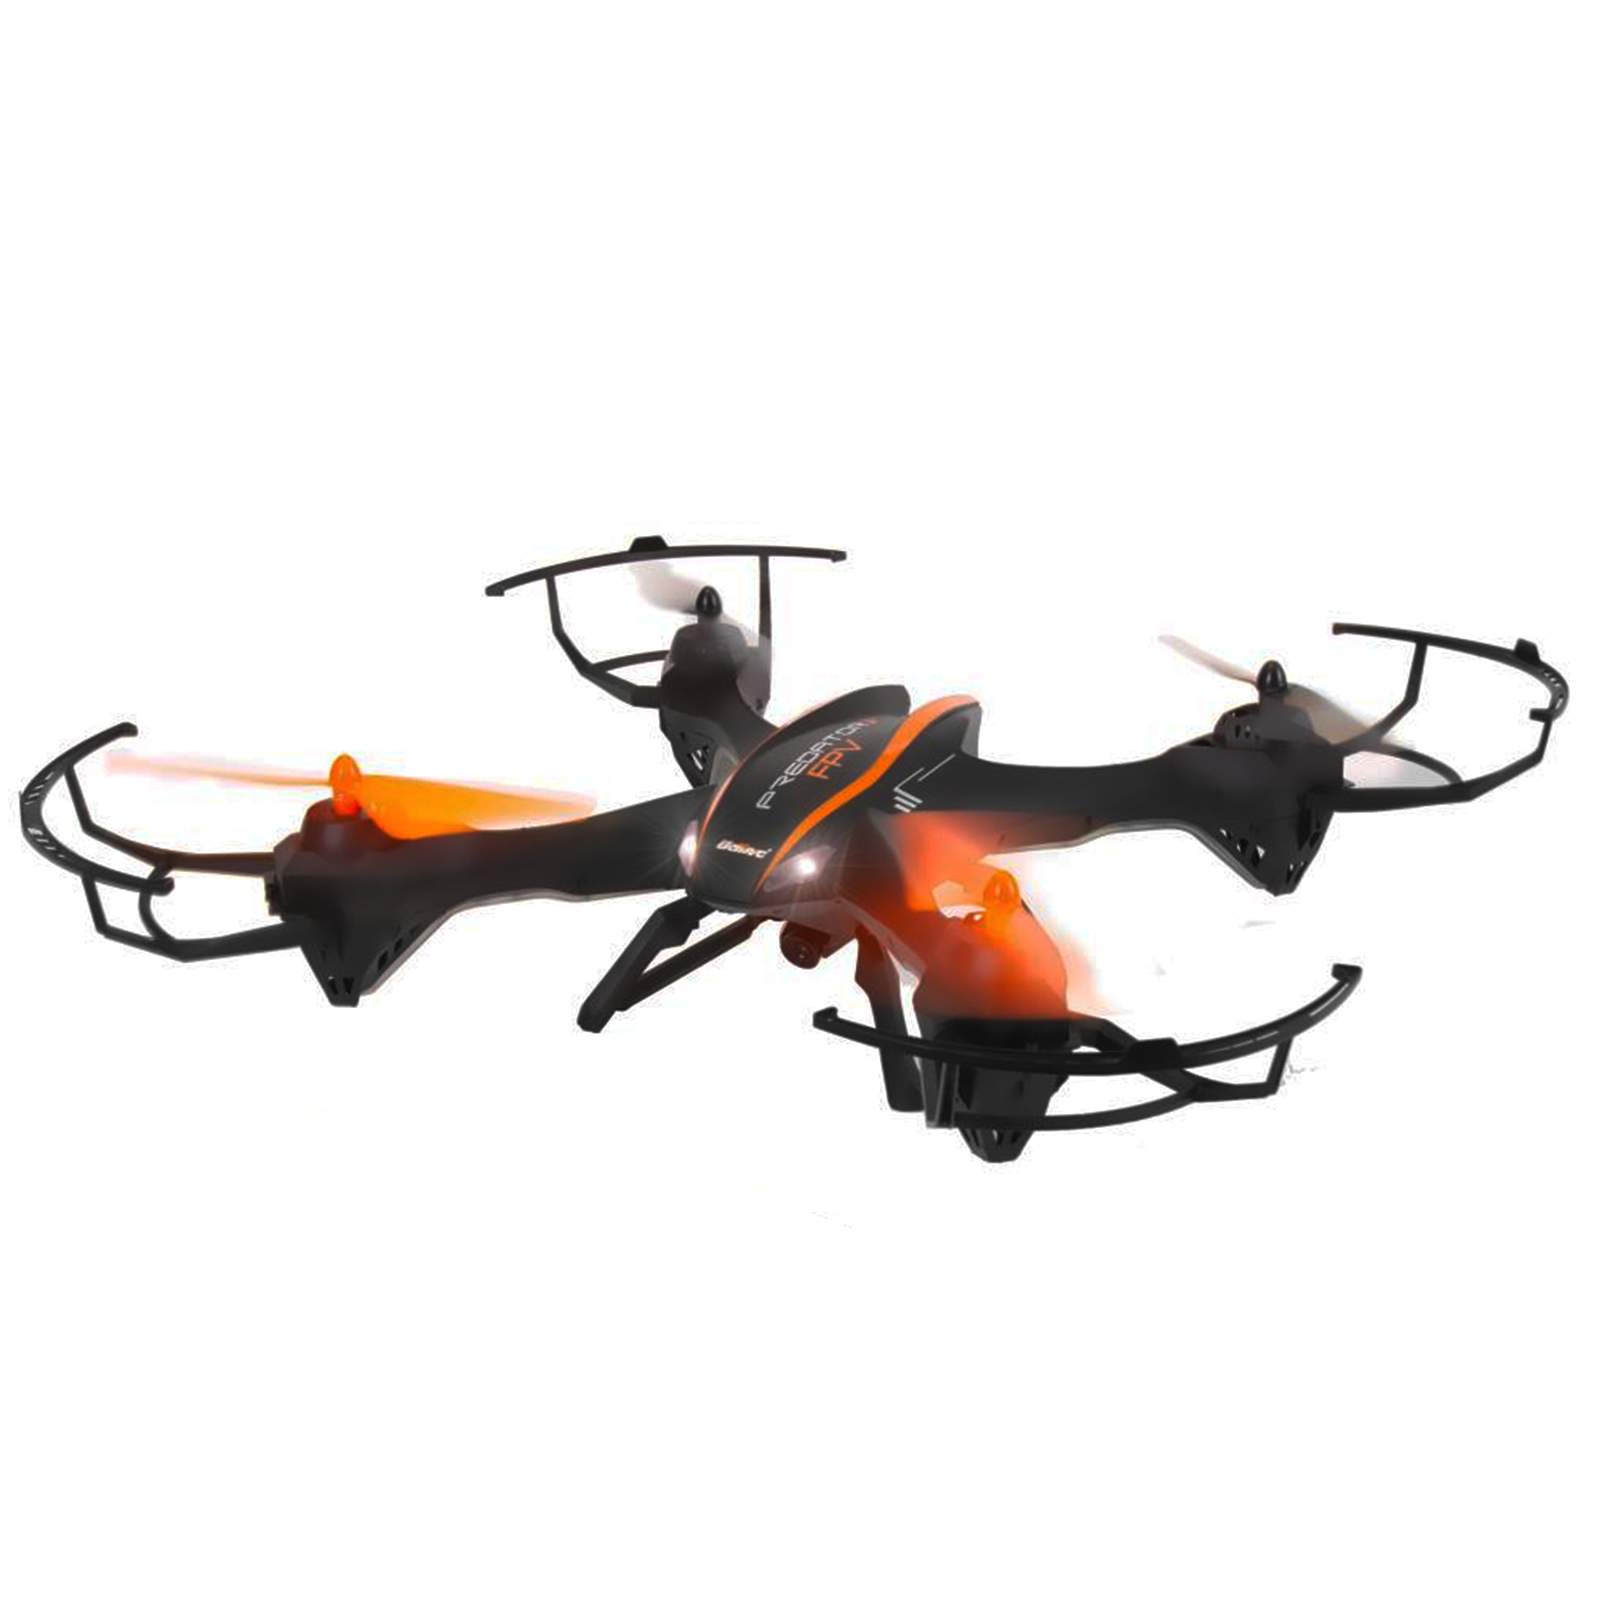 SereneLife WiFi Quad-Copter Wireless UAV with HD Camera and Video Recording by Serenelife